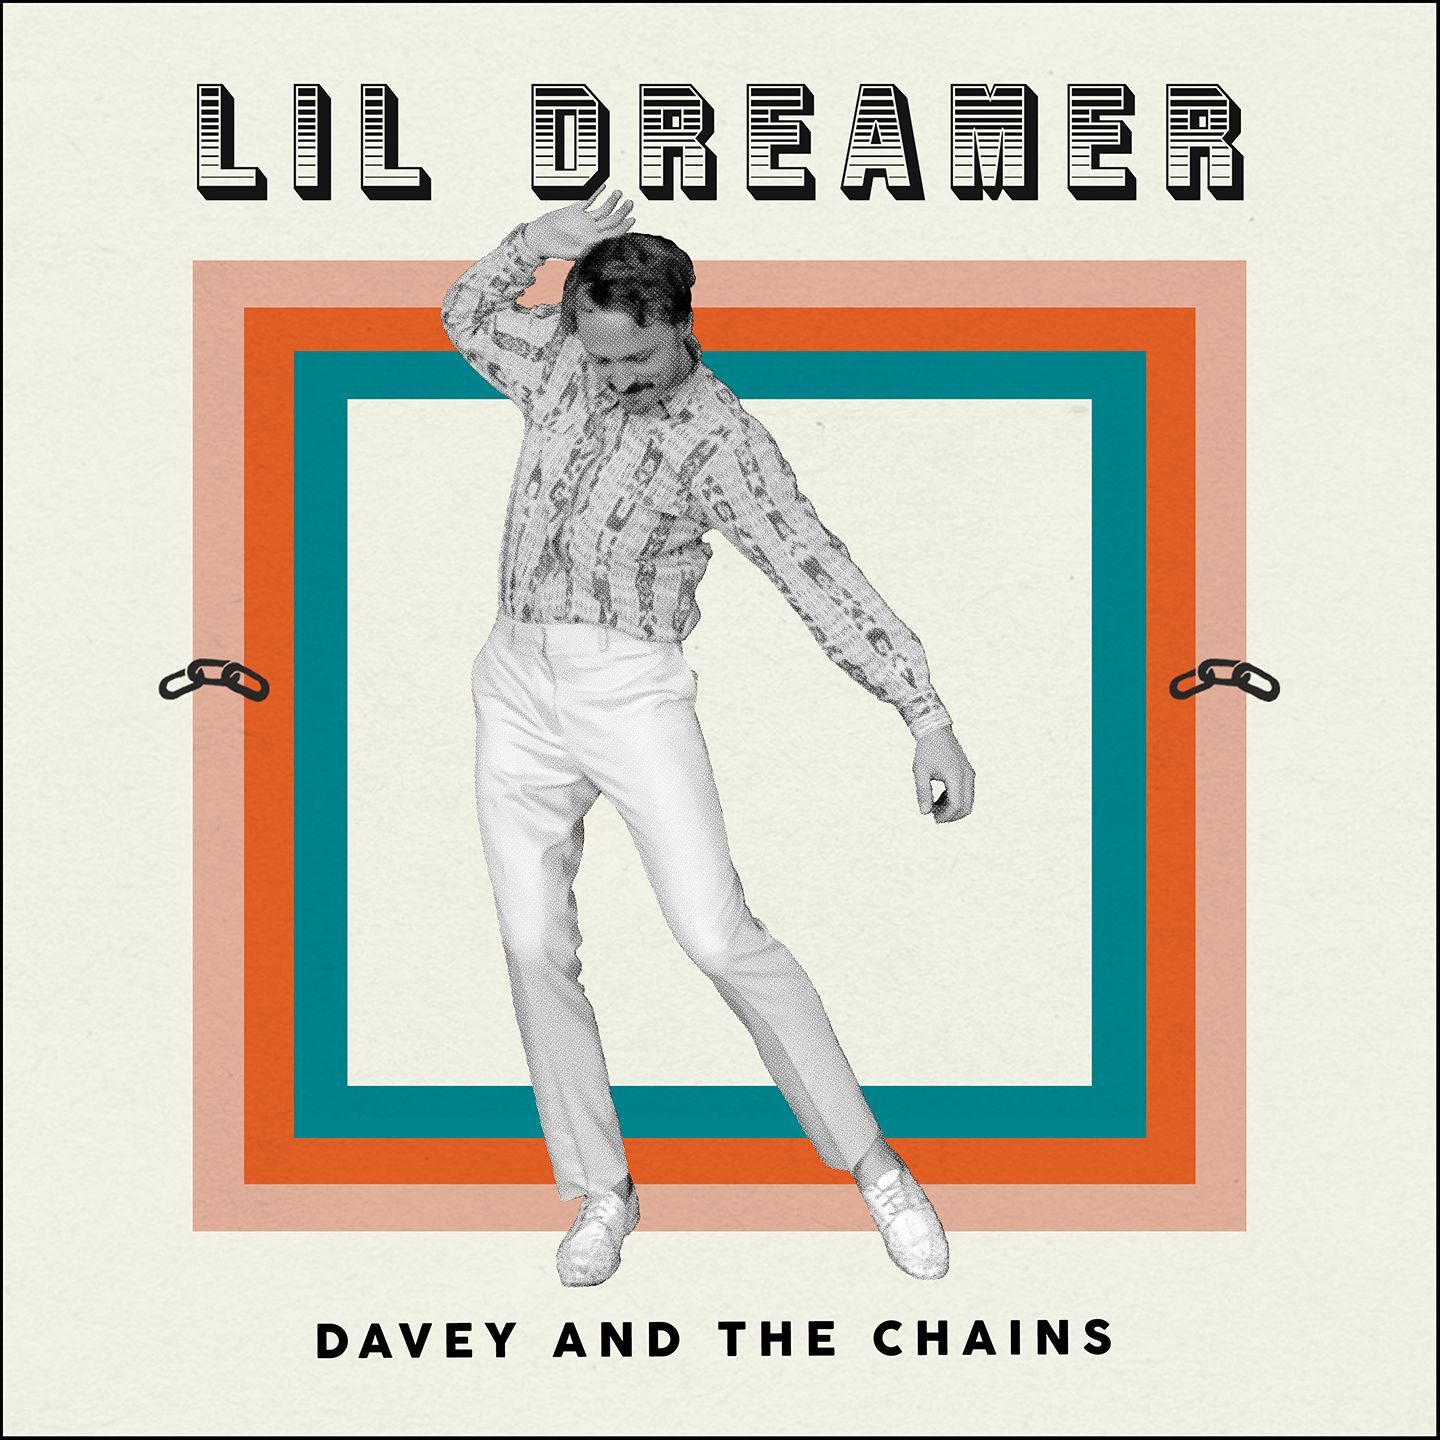 Davey and the Chains - Listen to their new album, Shimmy